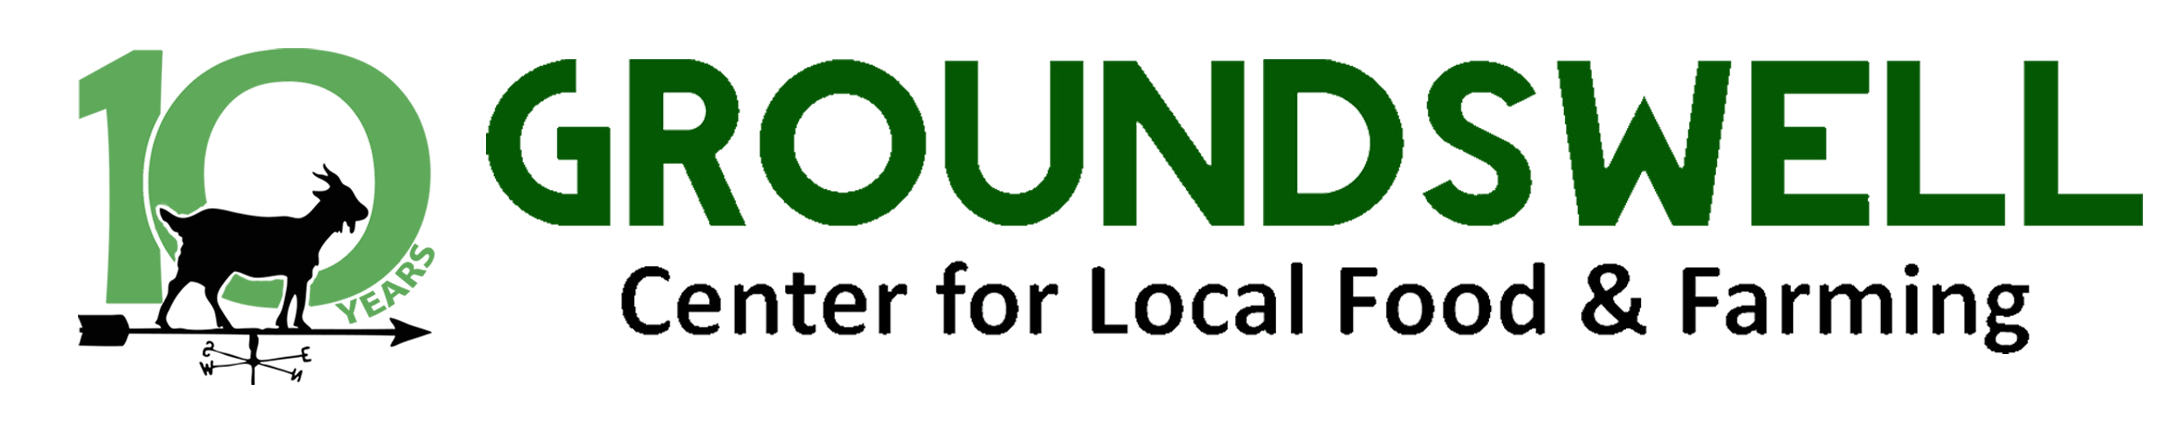 Groundswell Center